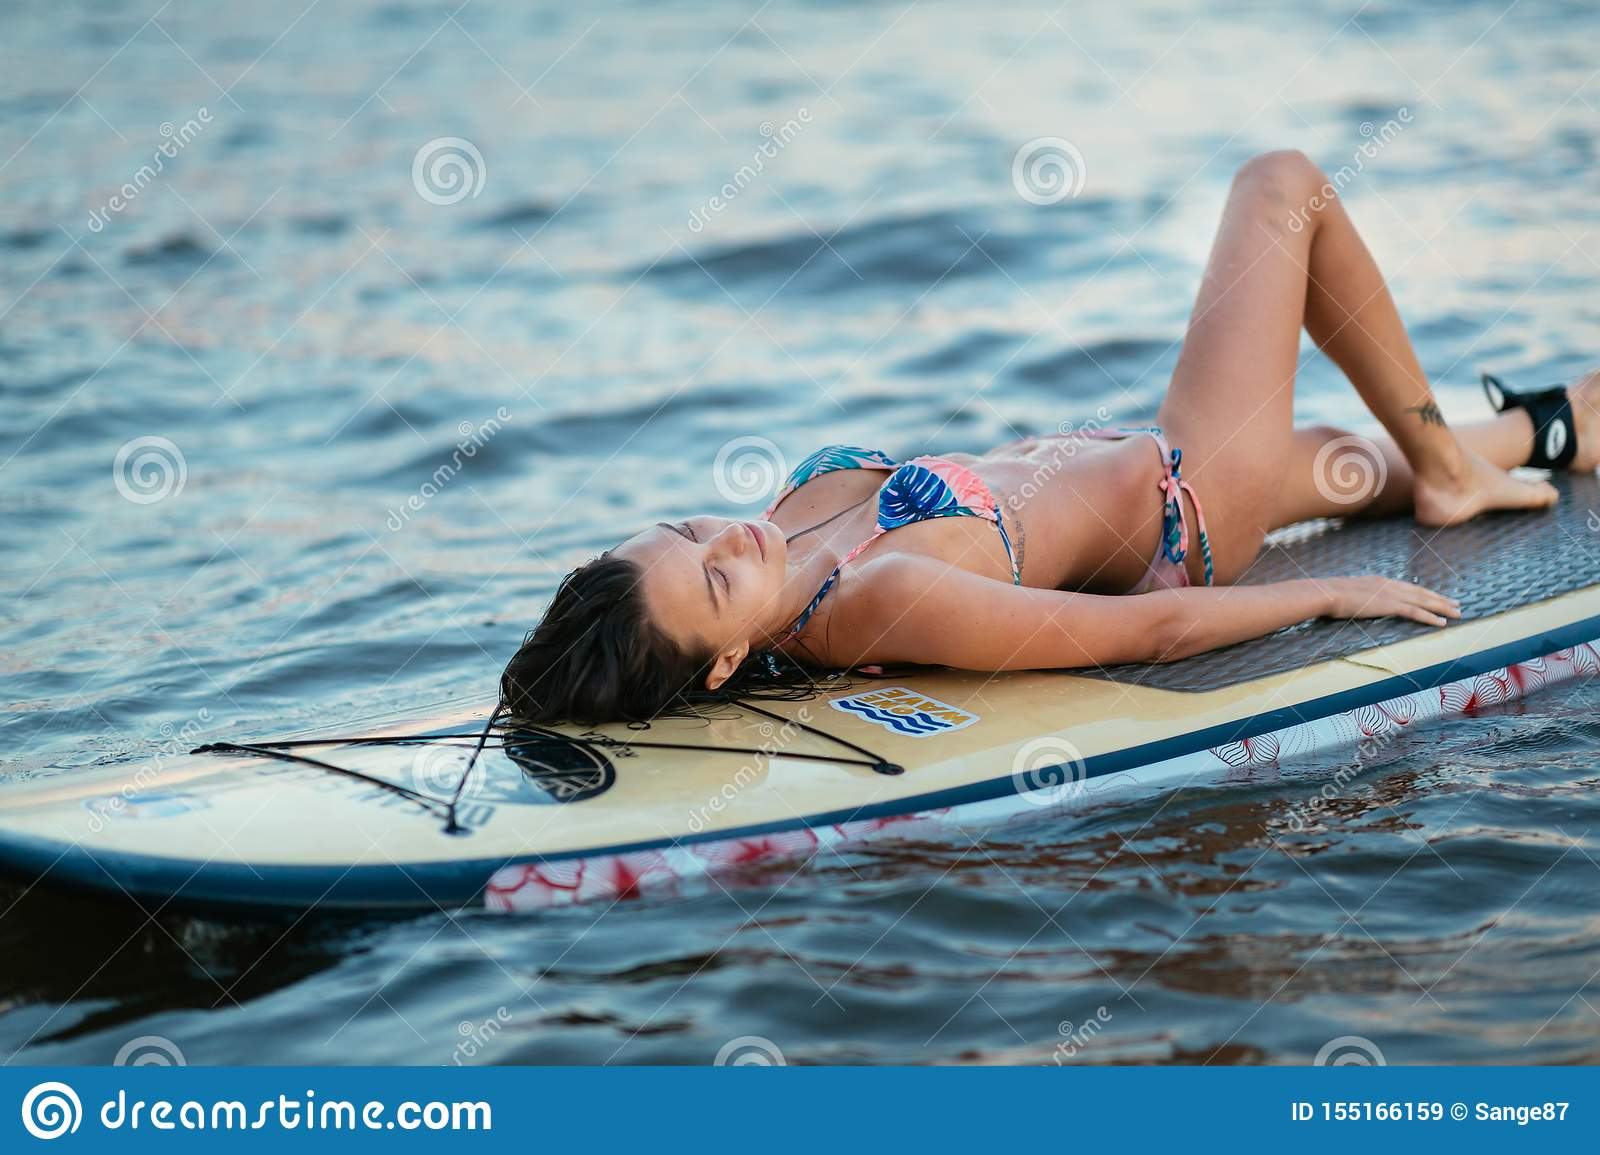 Beautiful Fit Surfing Girl On Surfboard On In The Ocean